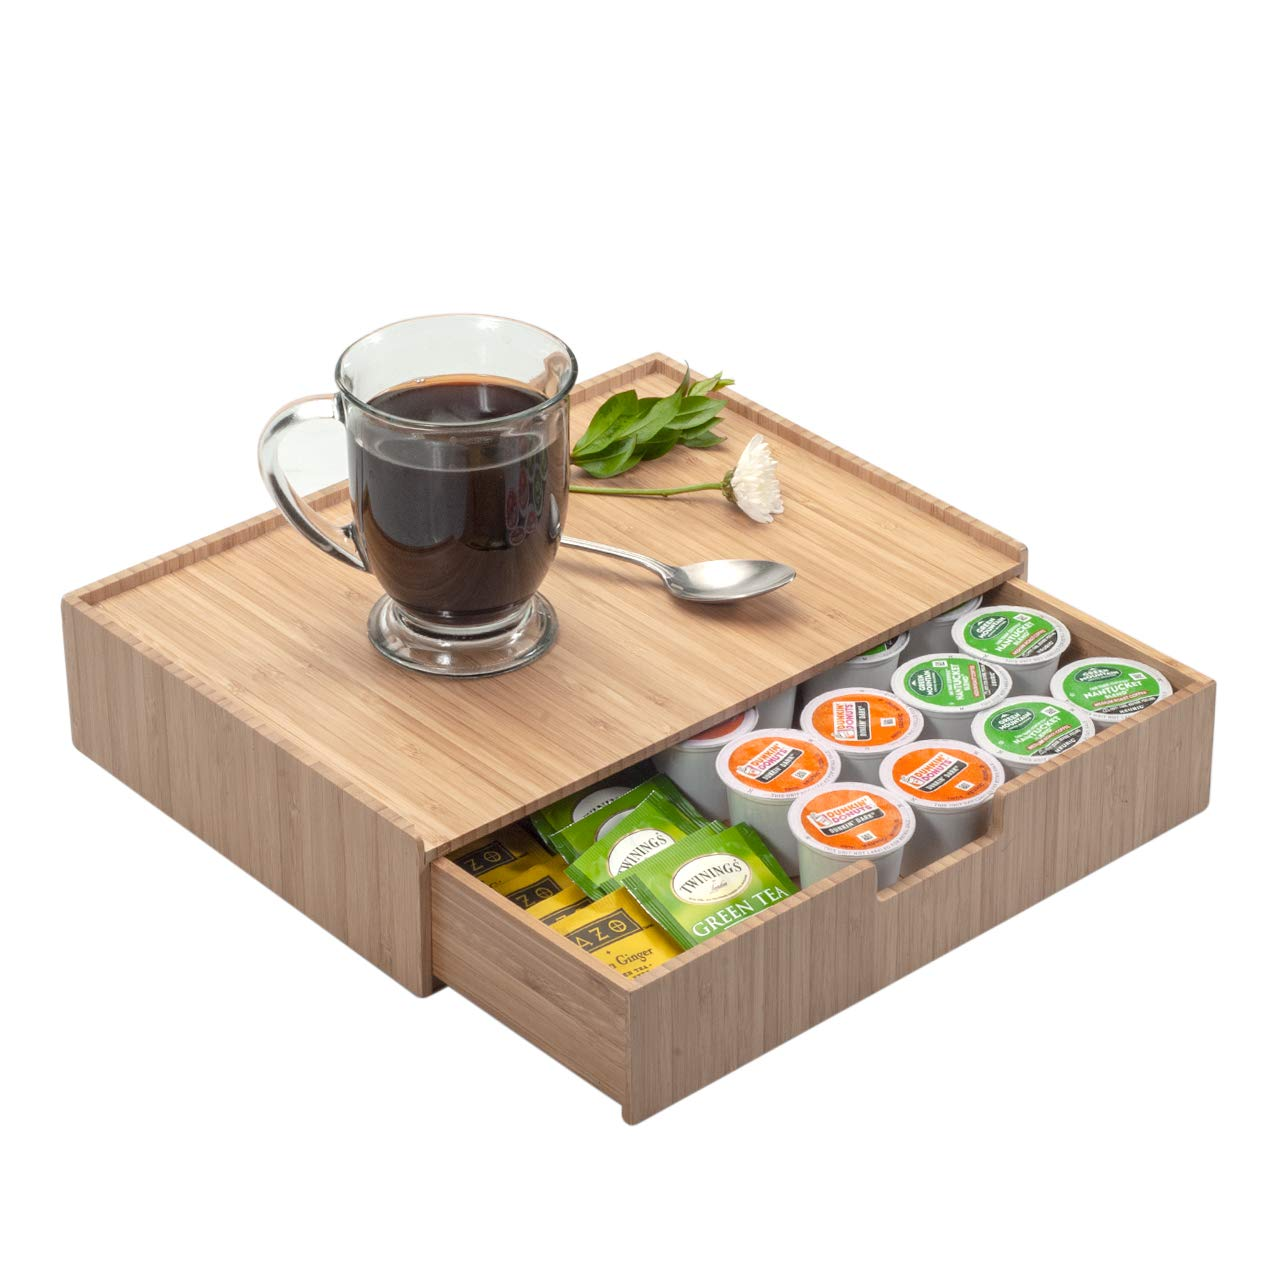 Bamboo Drawer Organizer to hold K-Cups, Coffee, Tea, Espresso Pods, Condiments and Accessories, Perfect for Kitchens & Office Break Rooms